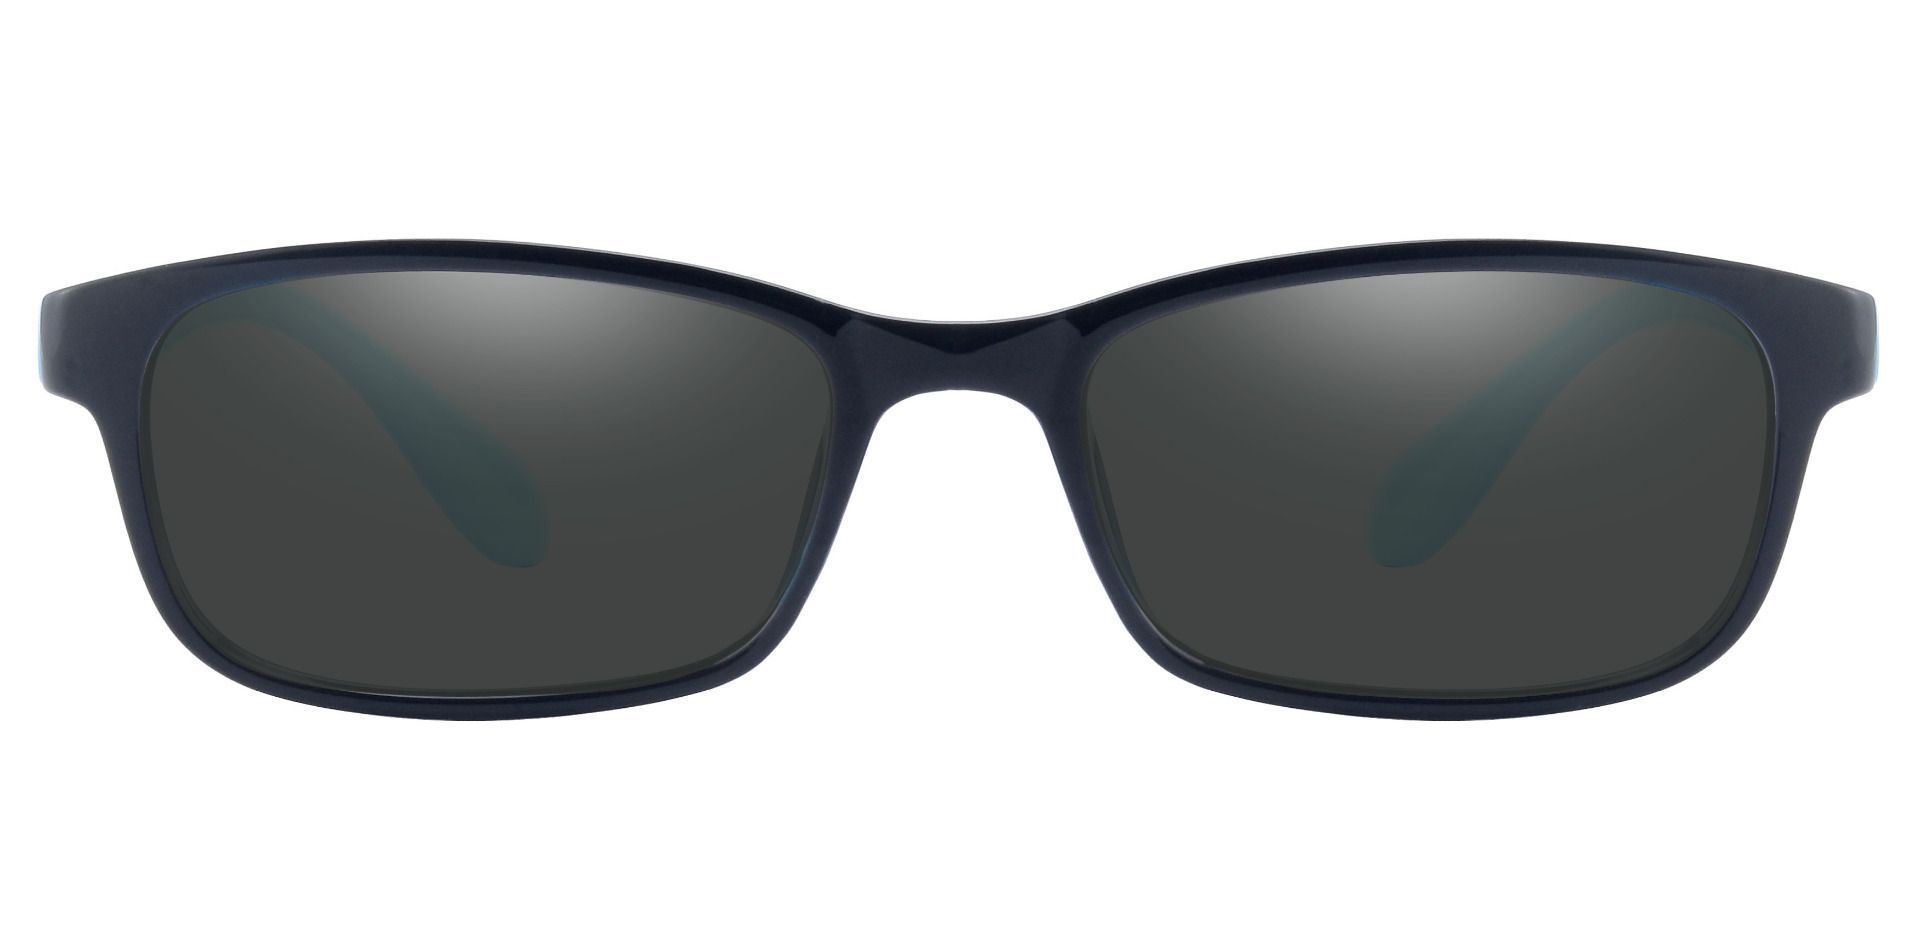 Amos Rectangle Prescription Sunglasses -  Black Frame With Gray Lenses